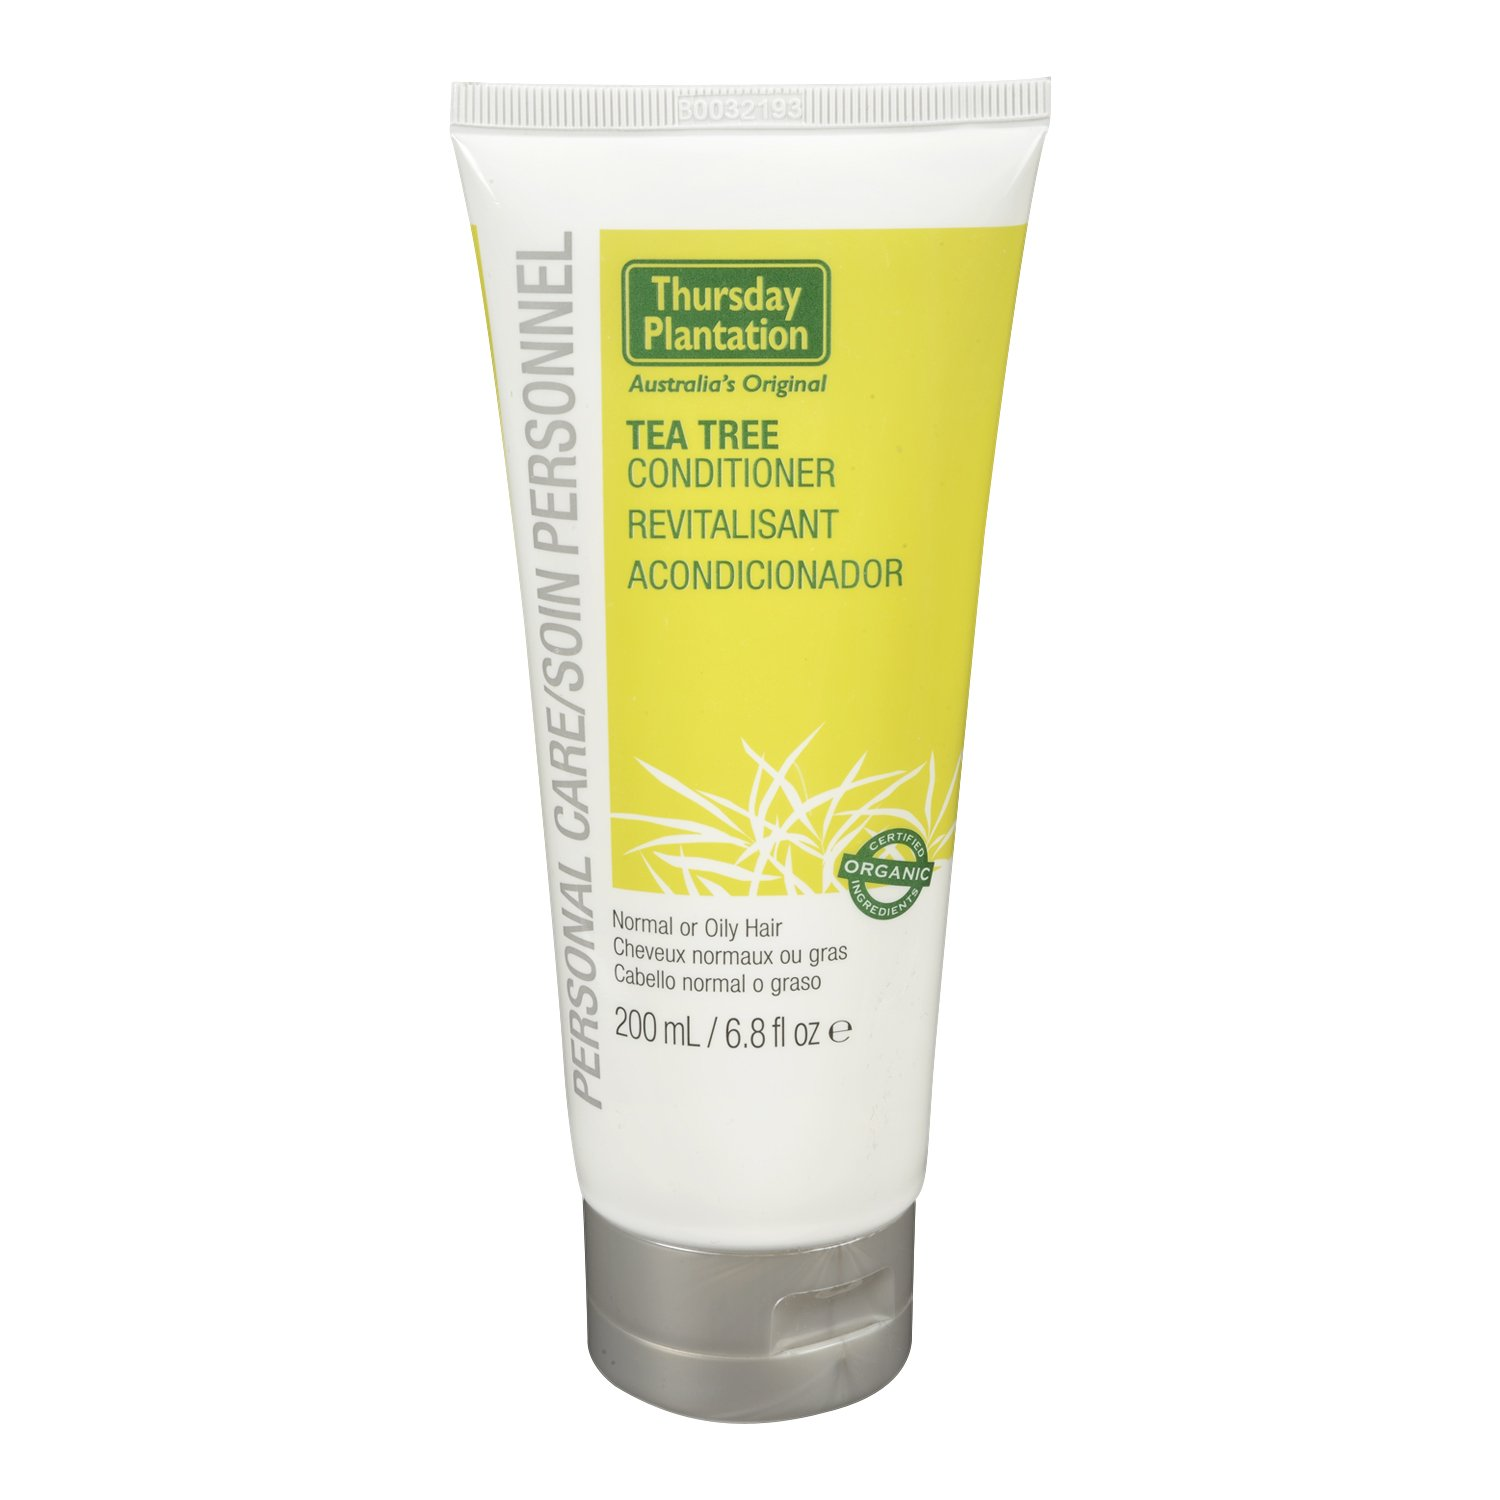 Thursday Plantation Tea Tree Conditioner 200ml 0717554080449